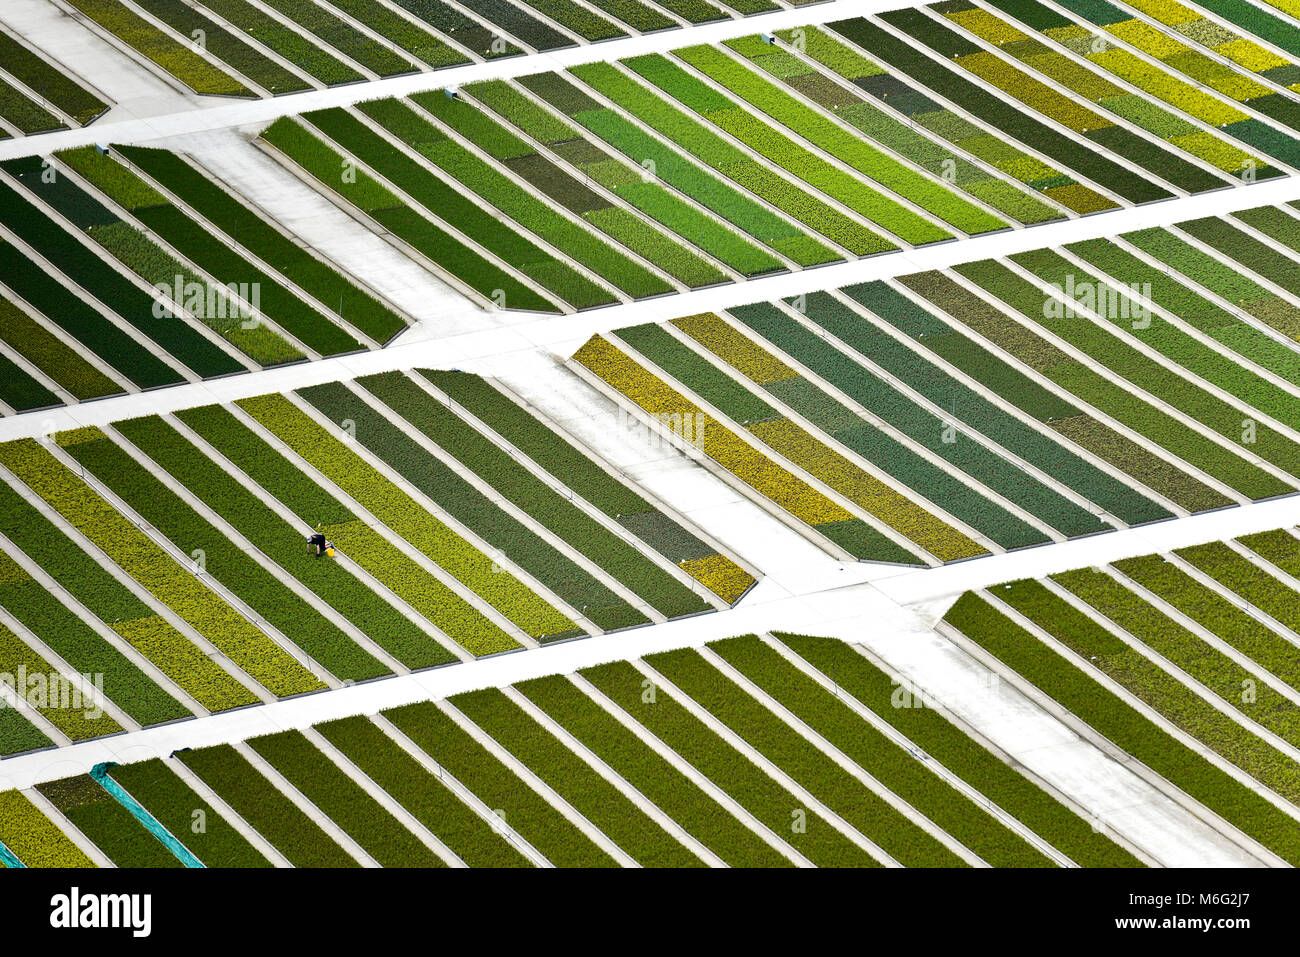 Aerial image of a plant nursery in Belgium - Stock Image